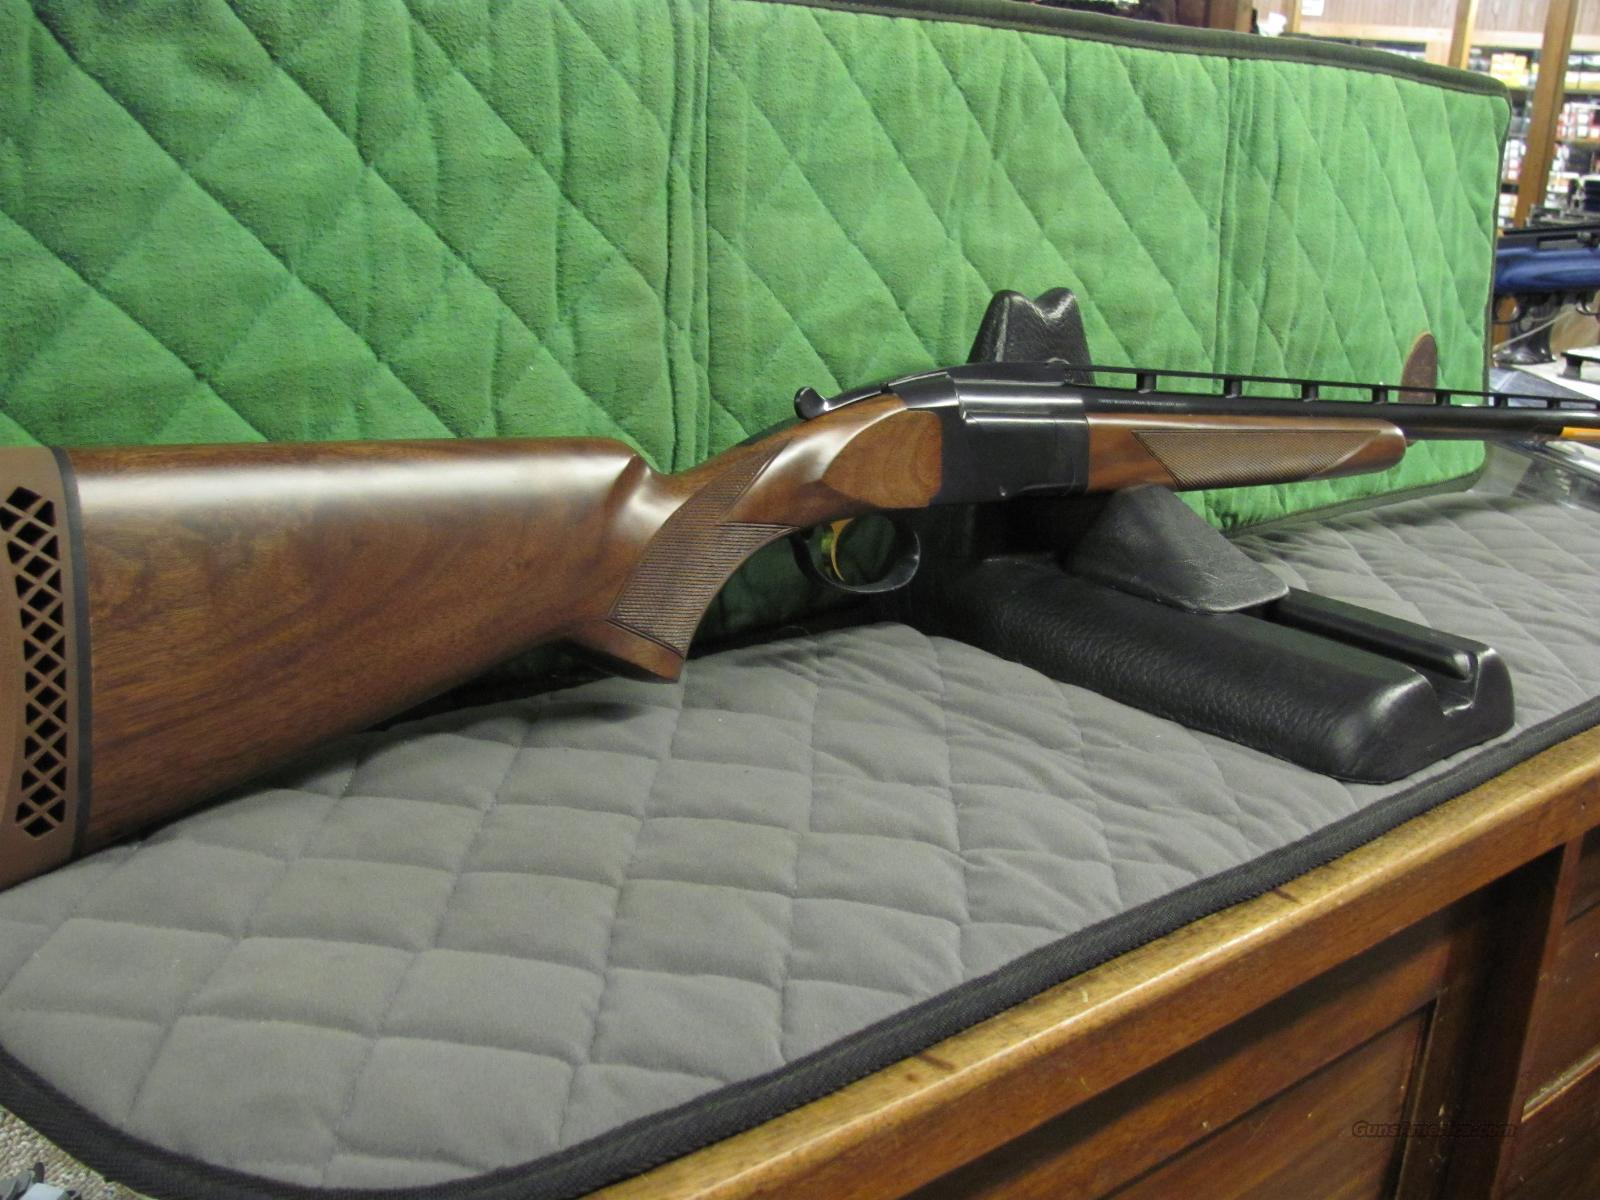 Browning BT-99 Micro 30 inch  **NEW**  Guns > Shotguns > Browning Shotguns > Single Barrel